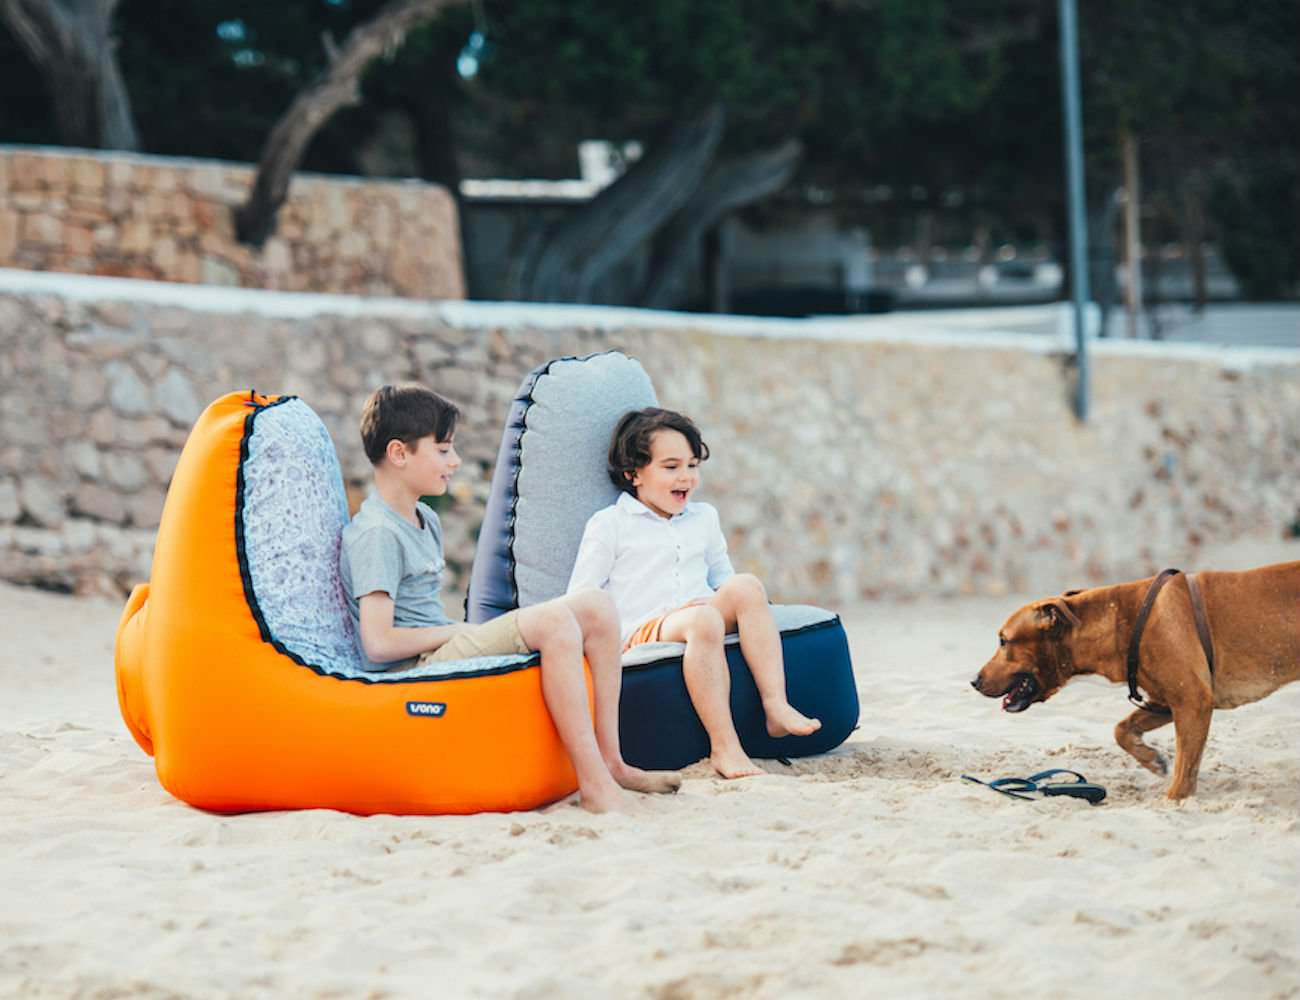 Your kids will love relaxing on the new TRONO inflatable loungers